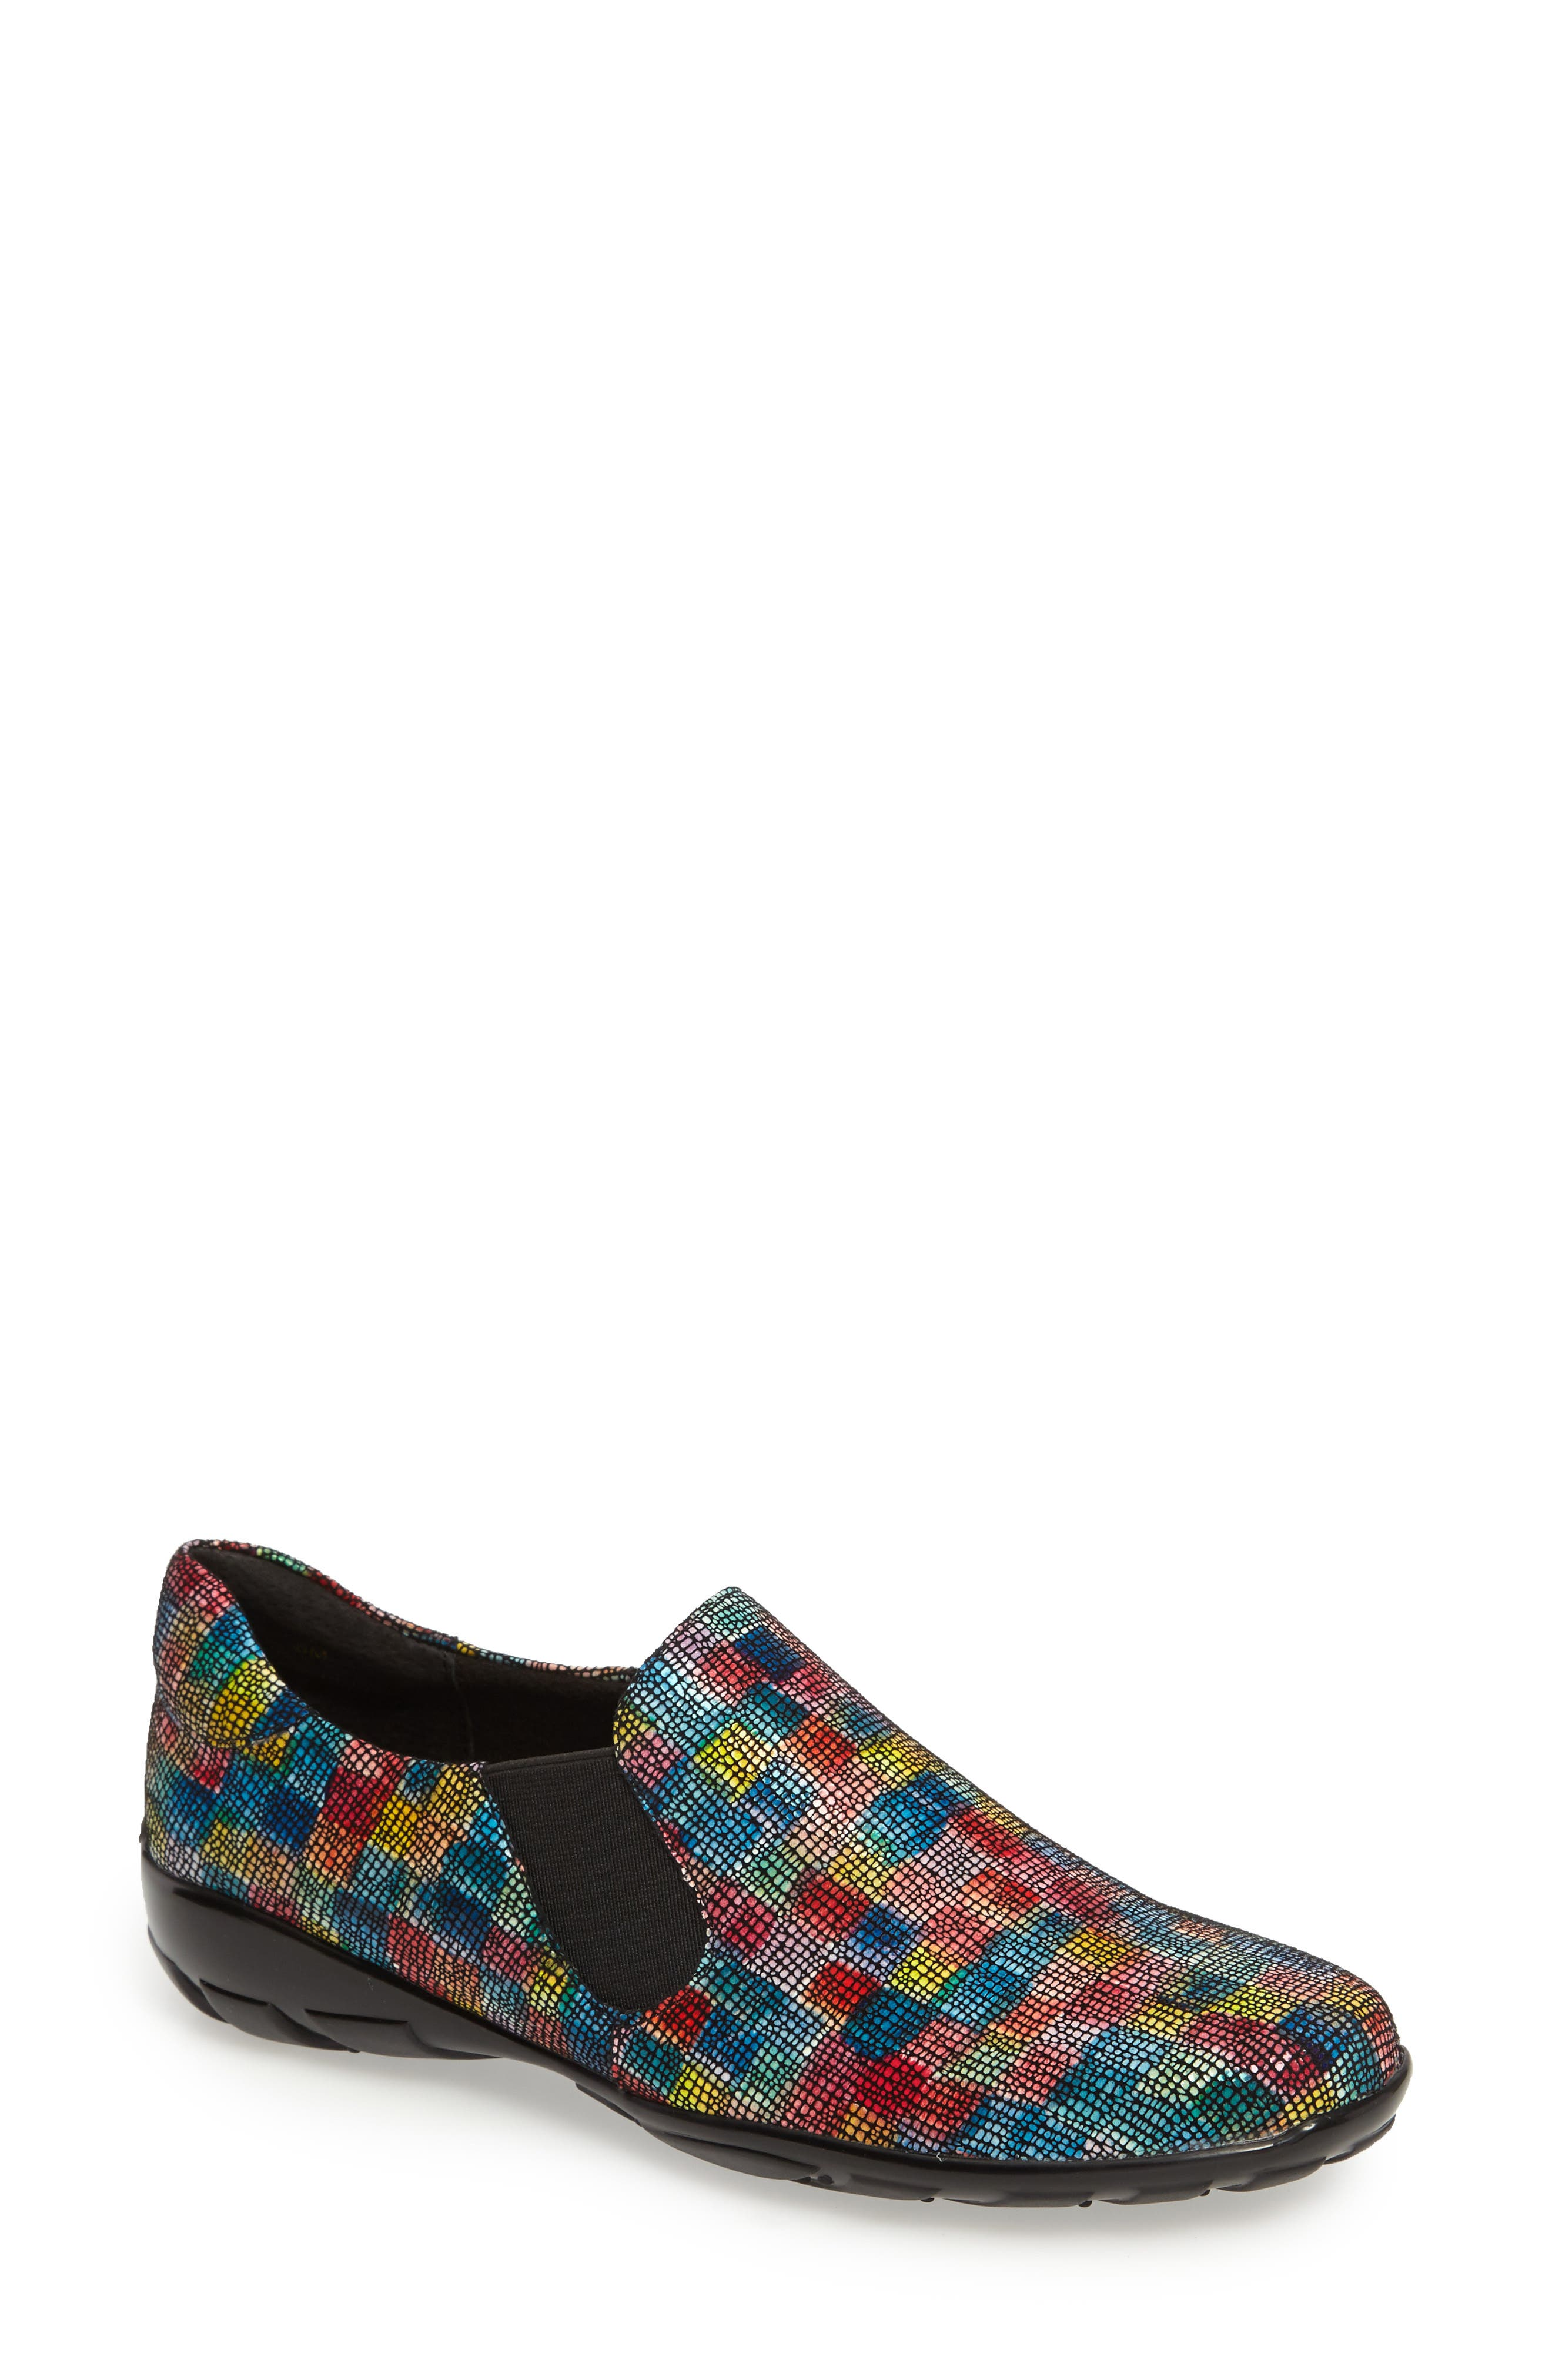 Main Image - VANELi 'Anemone' Loafer (Online Only)